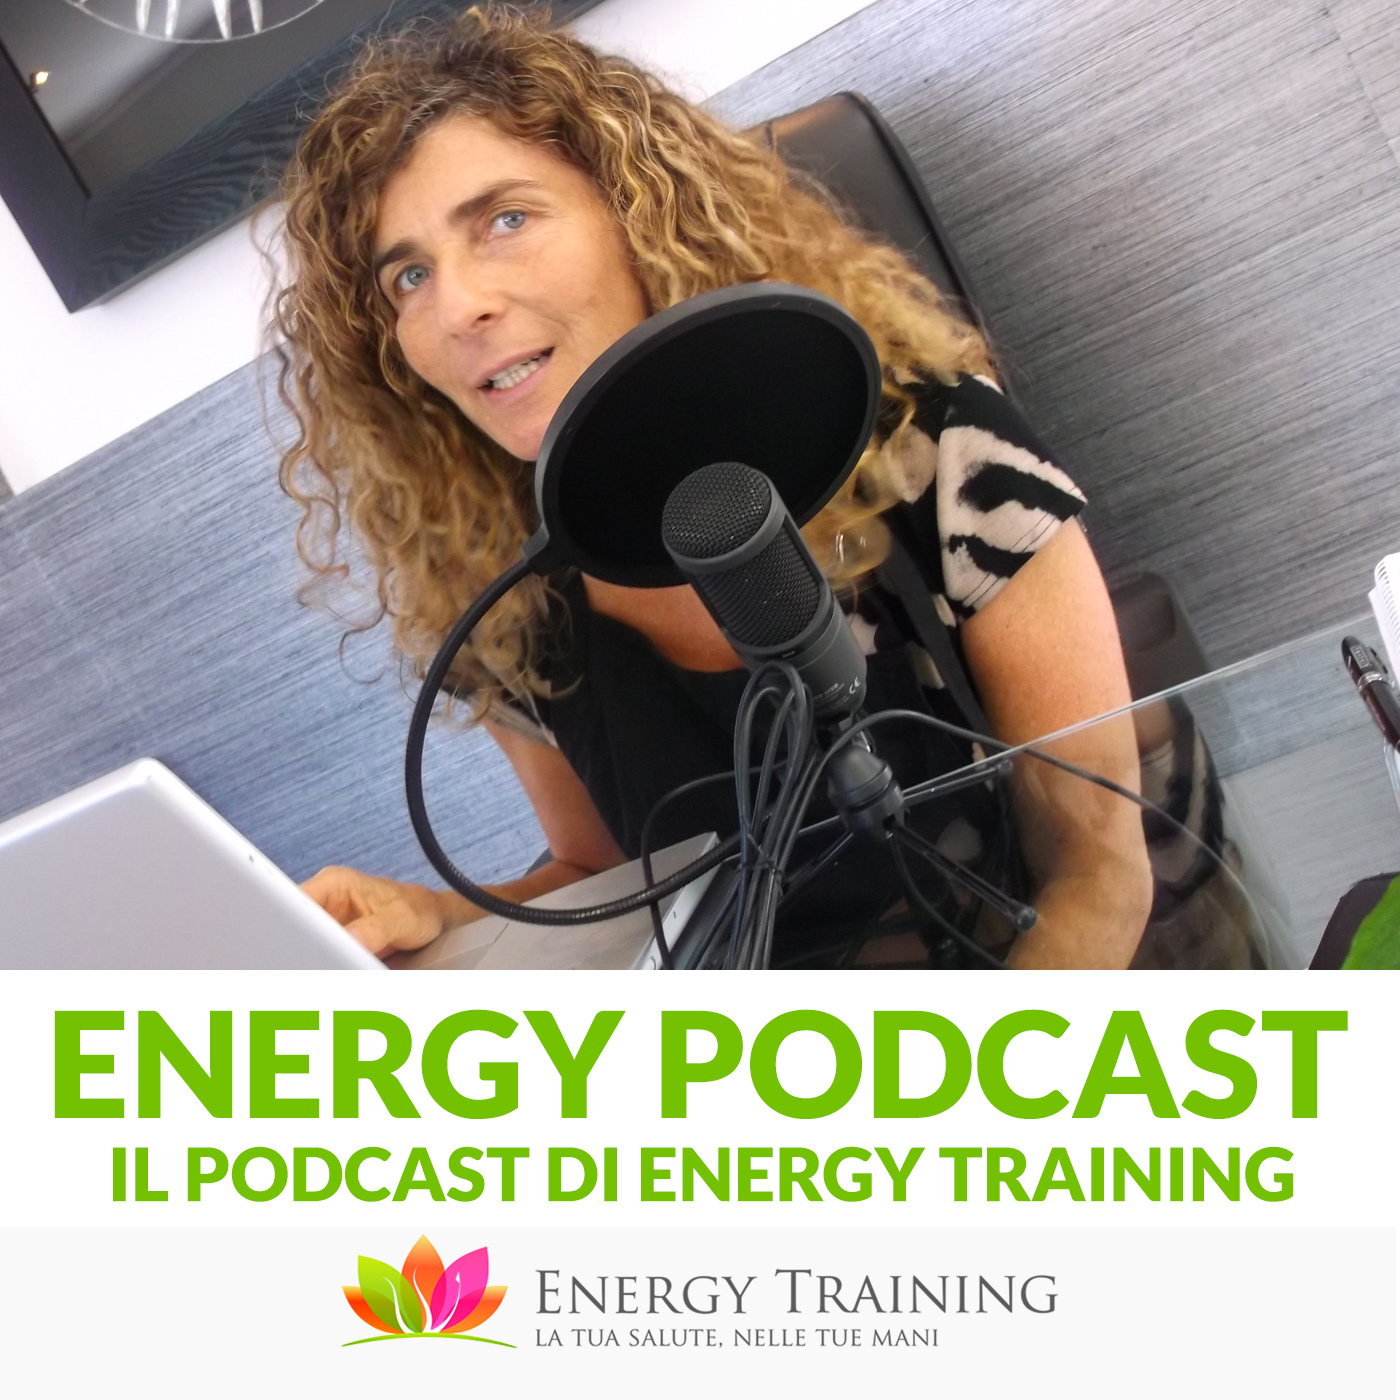 Energy Podcast